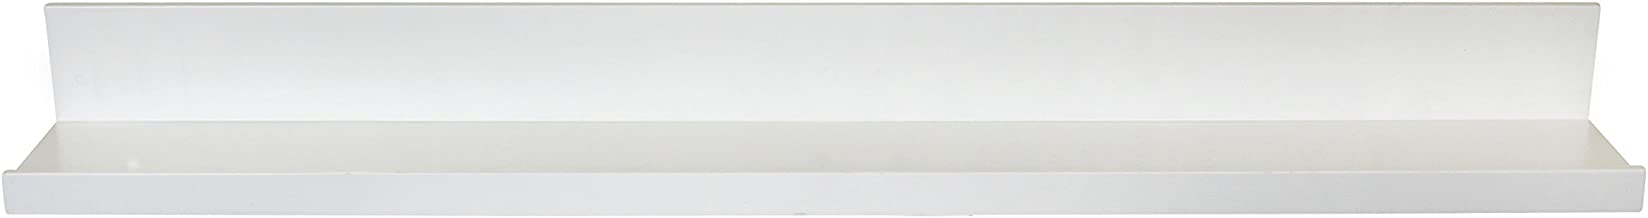 InPlace Shelving 9084678 Floating Wall Shelf with Picture Ledge, White, 35.4-Inch Wide by 4.5-Inch Deep by 3.5-Inch High